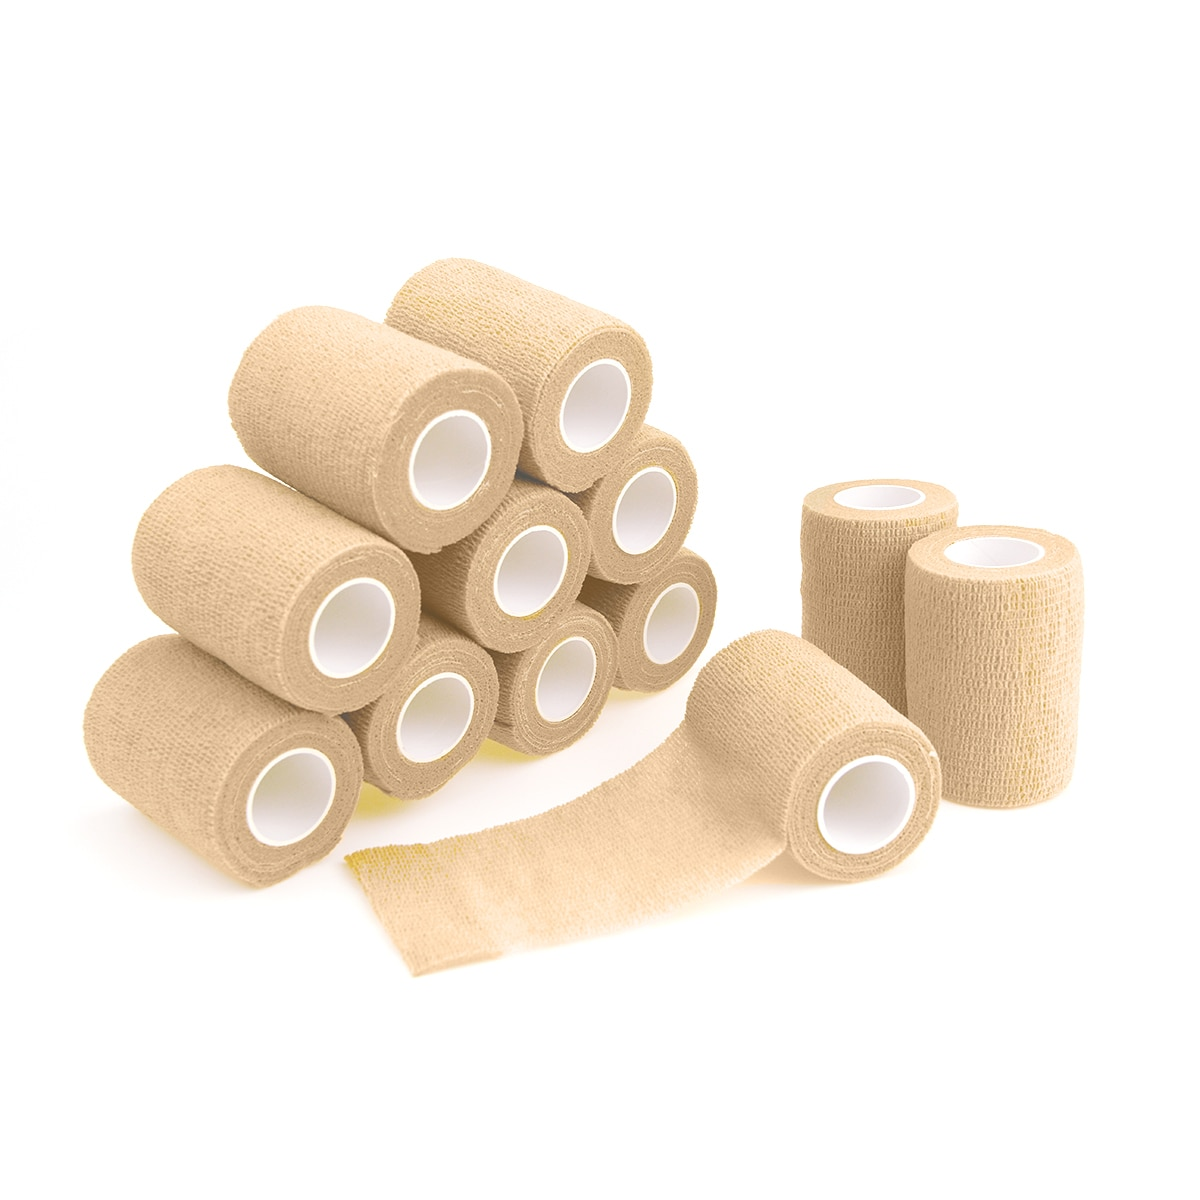 12 Rolls 7.5cm Self Adhesive Bandage Waterproof Nonwoven Bandage Breathable Sport Tape Muscle Wraps Medical Health Care